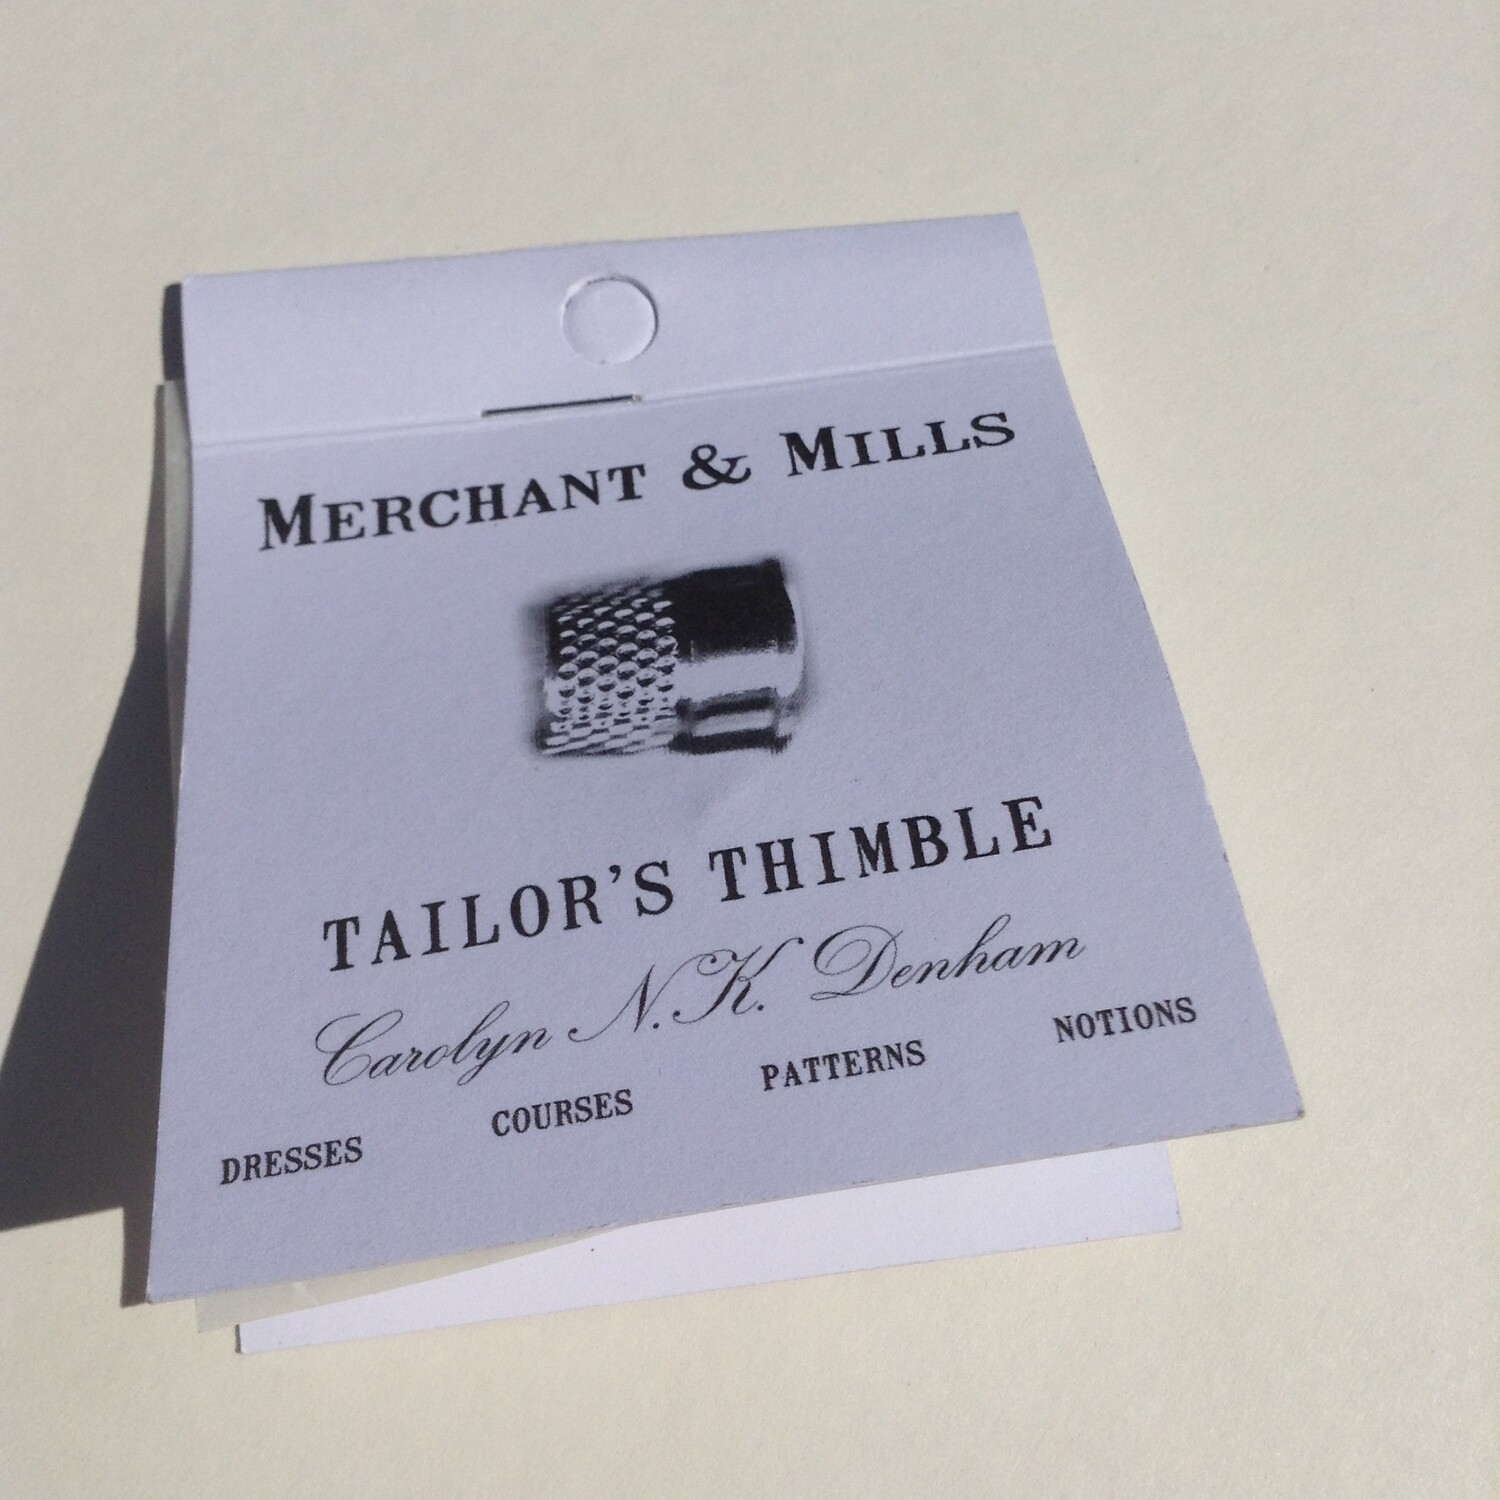 Thimble: Capless Tailor's Thimble from Merchant & Mills